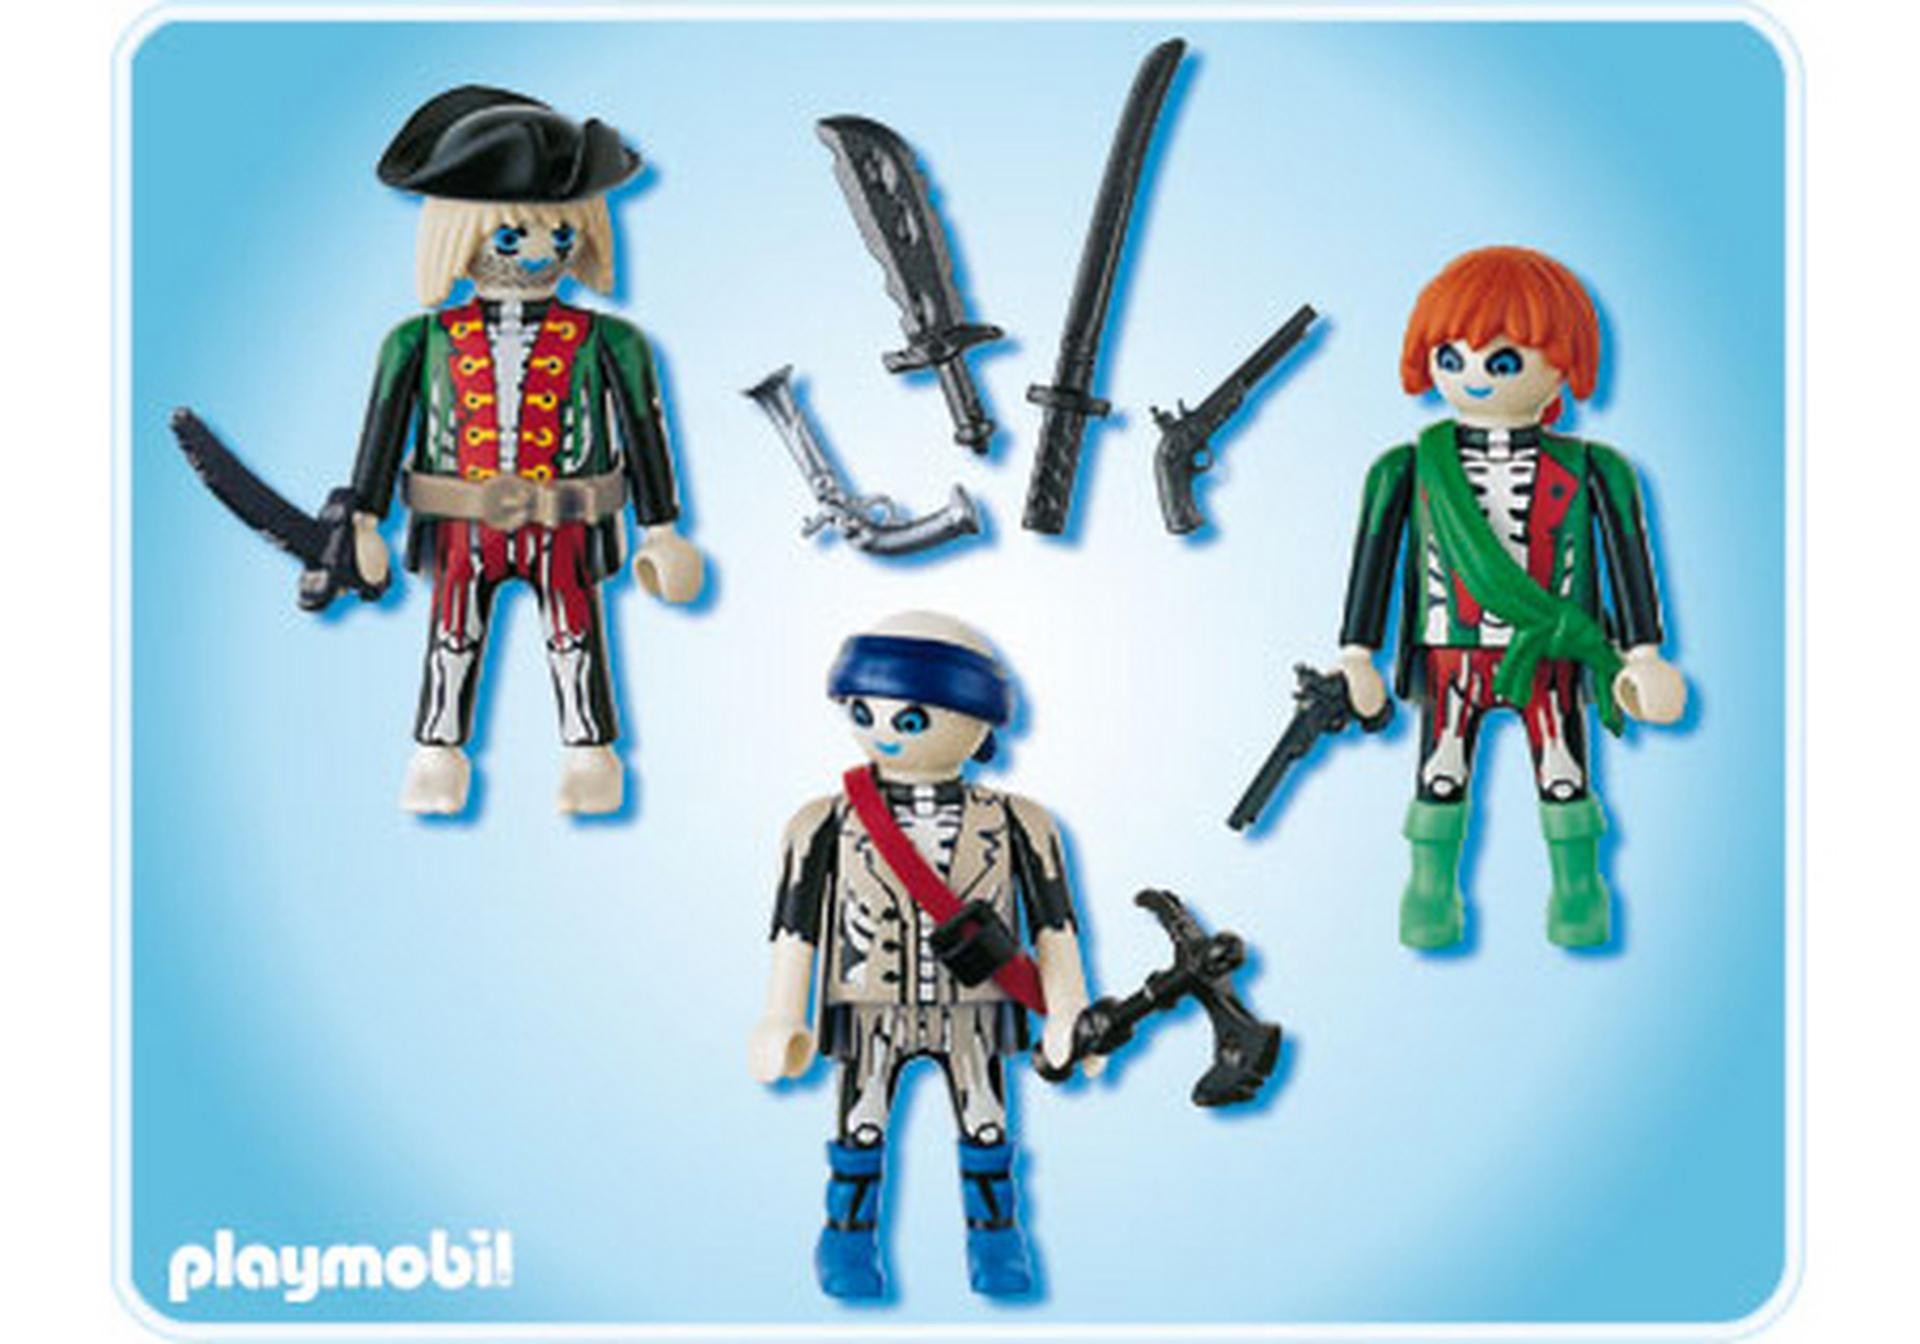 Pirates fant mes 4800 a playmobil france - Pirate fantome ...